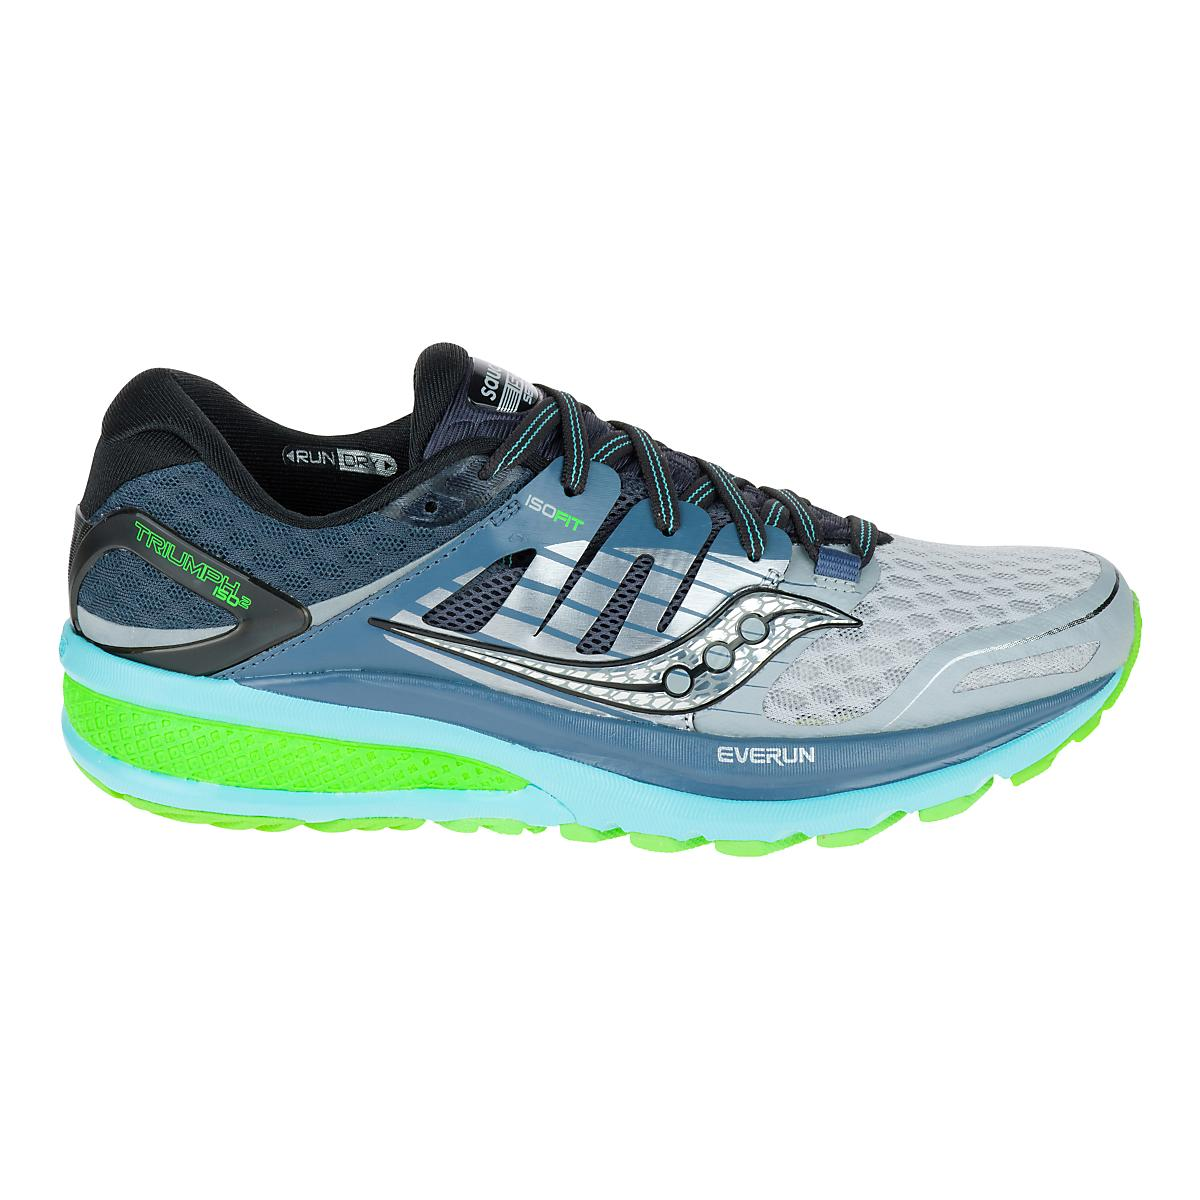 Womens Saucony Triumph ISO 2 Running Shoe at Road Runner Sports 3de99da20